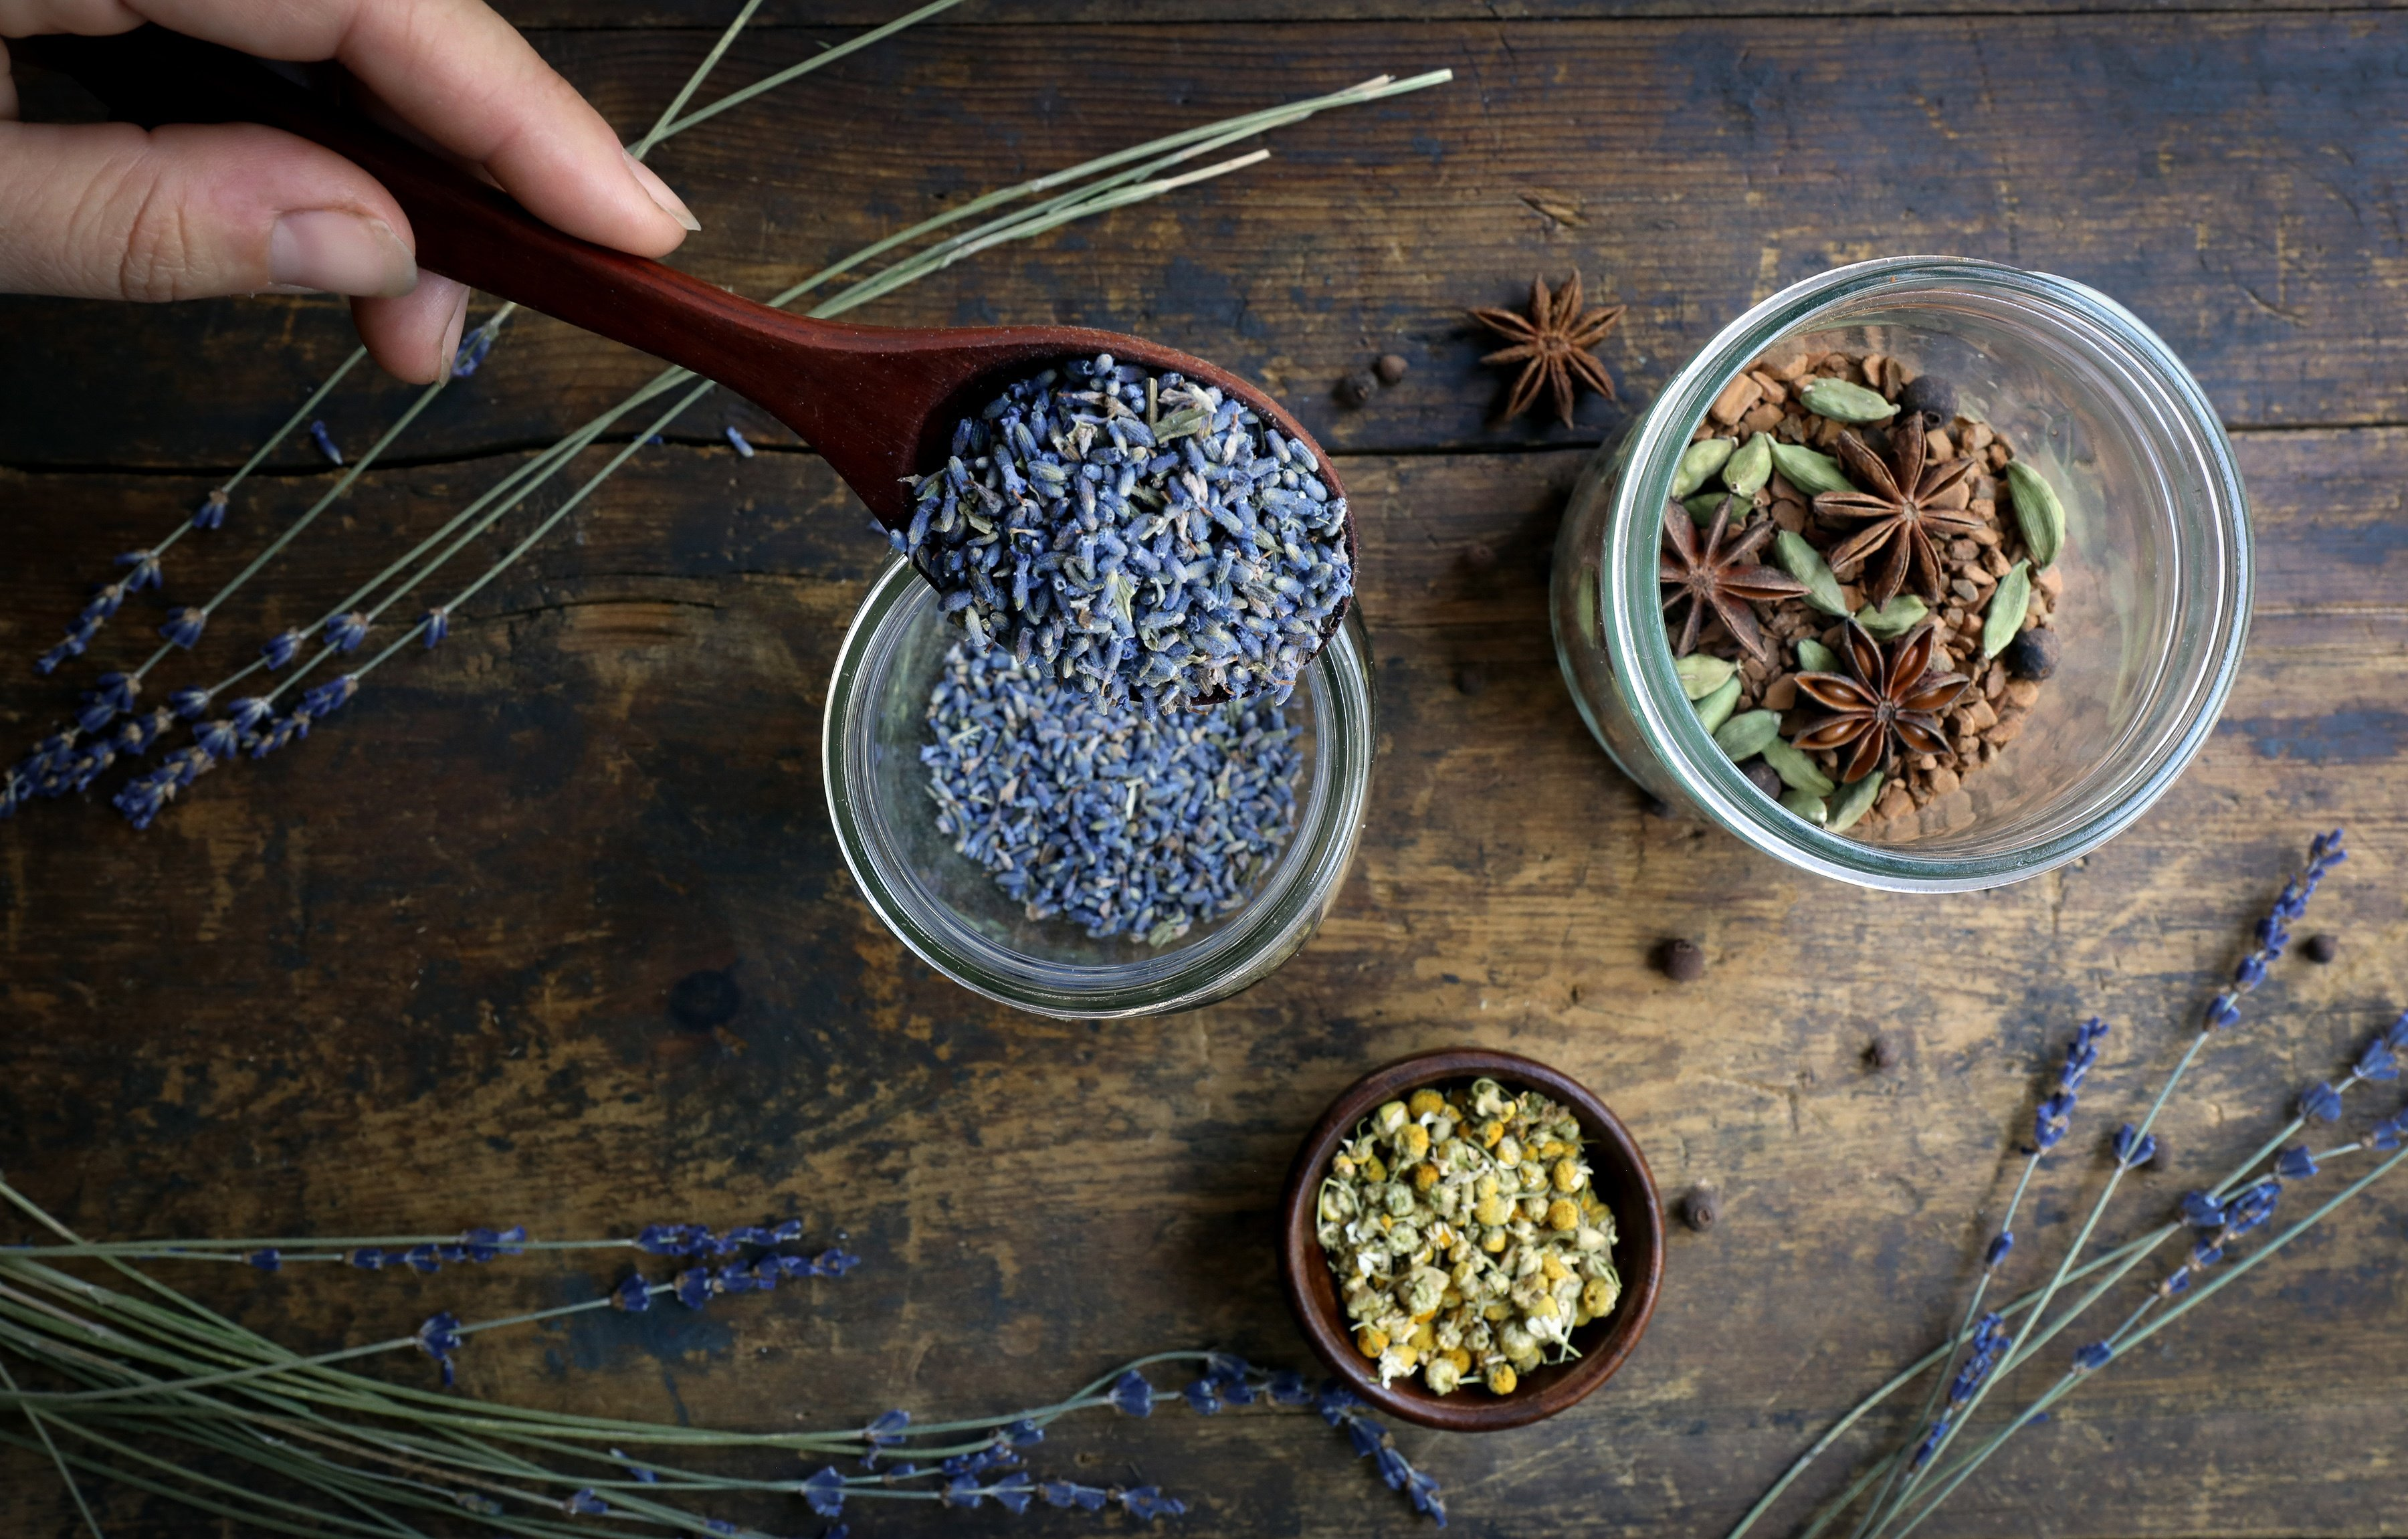 Hand pouring lavender into jar with sprigs of lavender on table and small bowl of chamomile flowers. Another jar with warming spices.